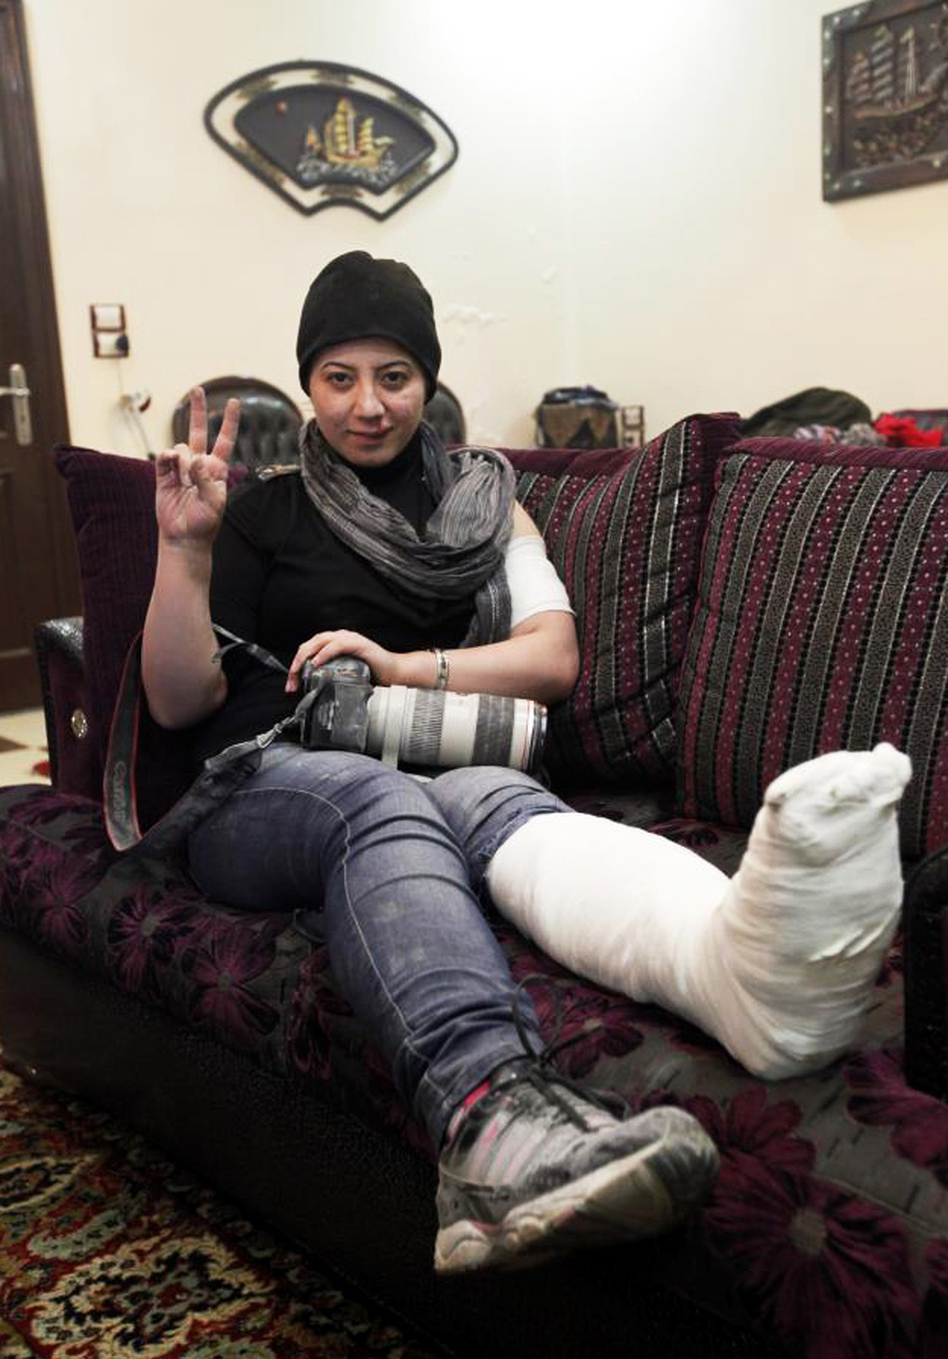 Kelze recently suffered a broken ankle when a wall collapsed on her during a firefight. She is recovering in Turkey, but plans to return to the front lines after she heals. (Courtesy of Noor Kelze)